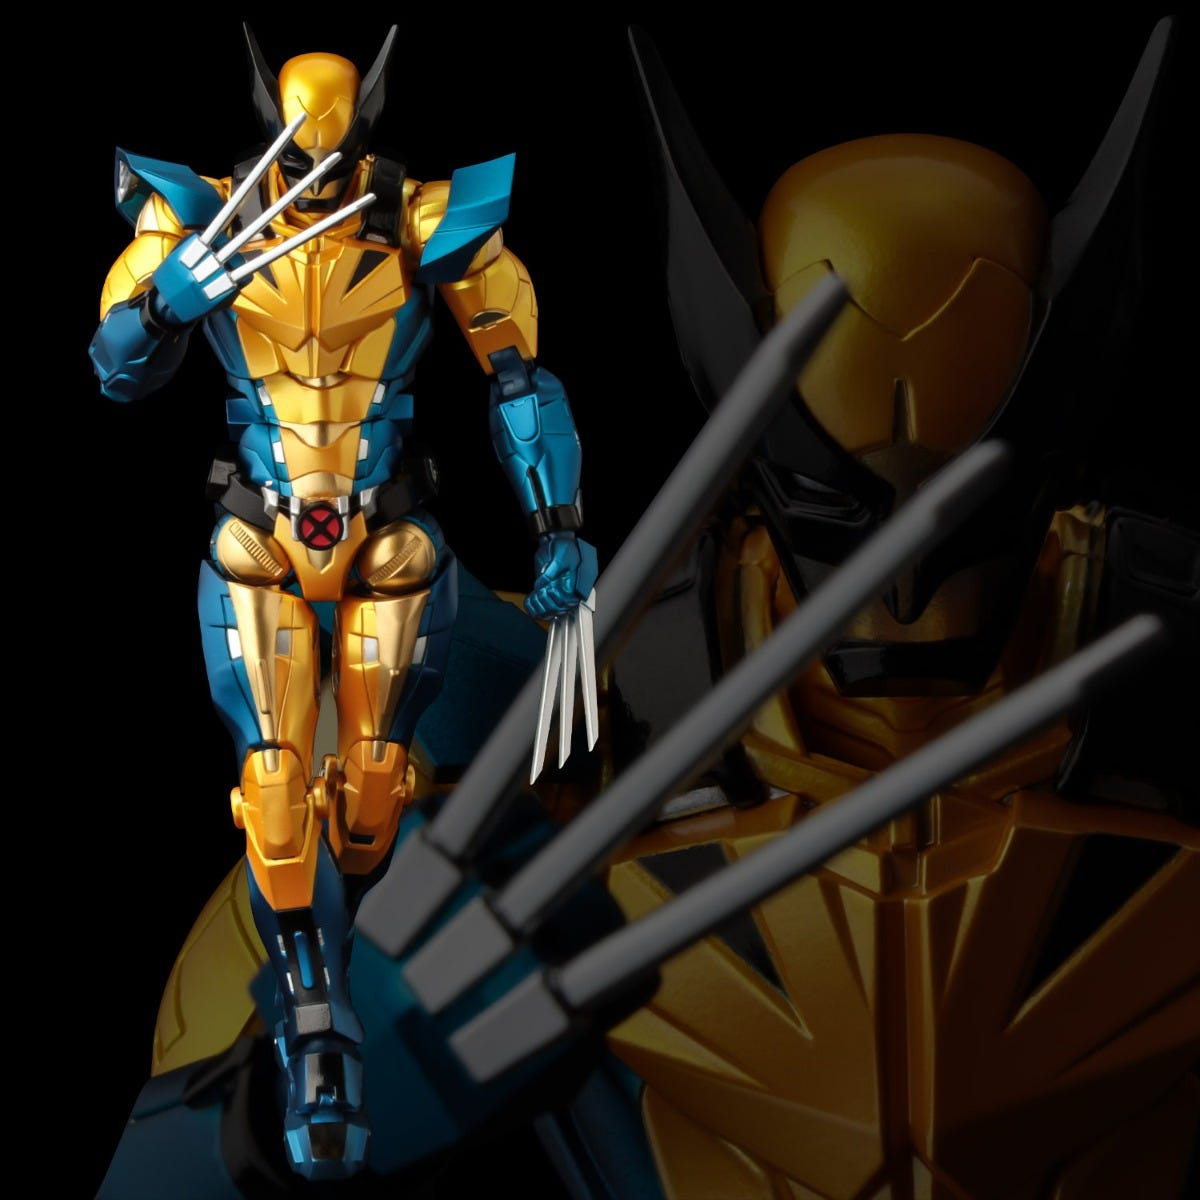 Sentinel Marvel Fighting Armor Wolverine Action Figure (16.5 Inch Tall approx)